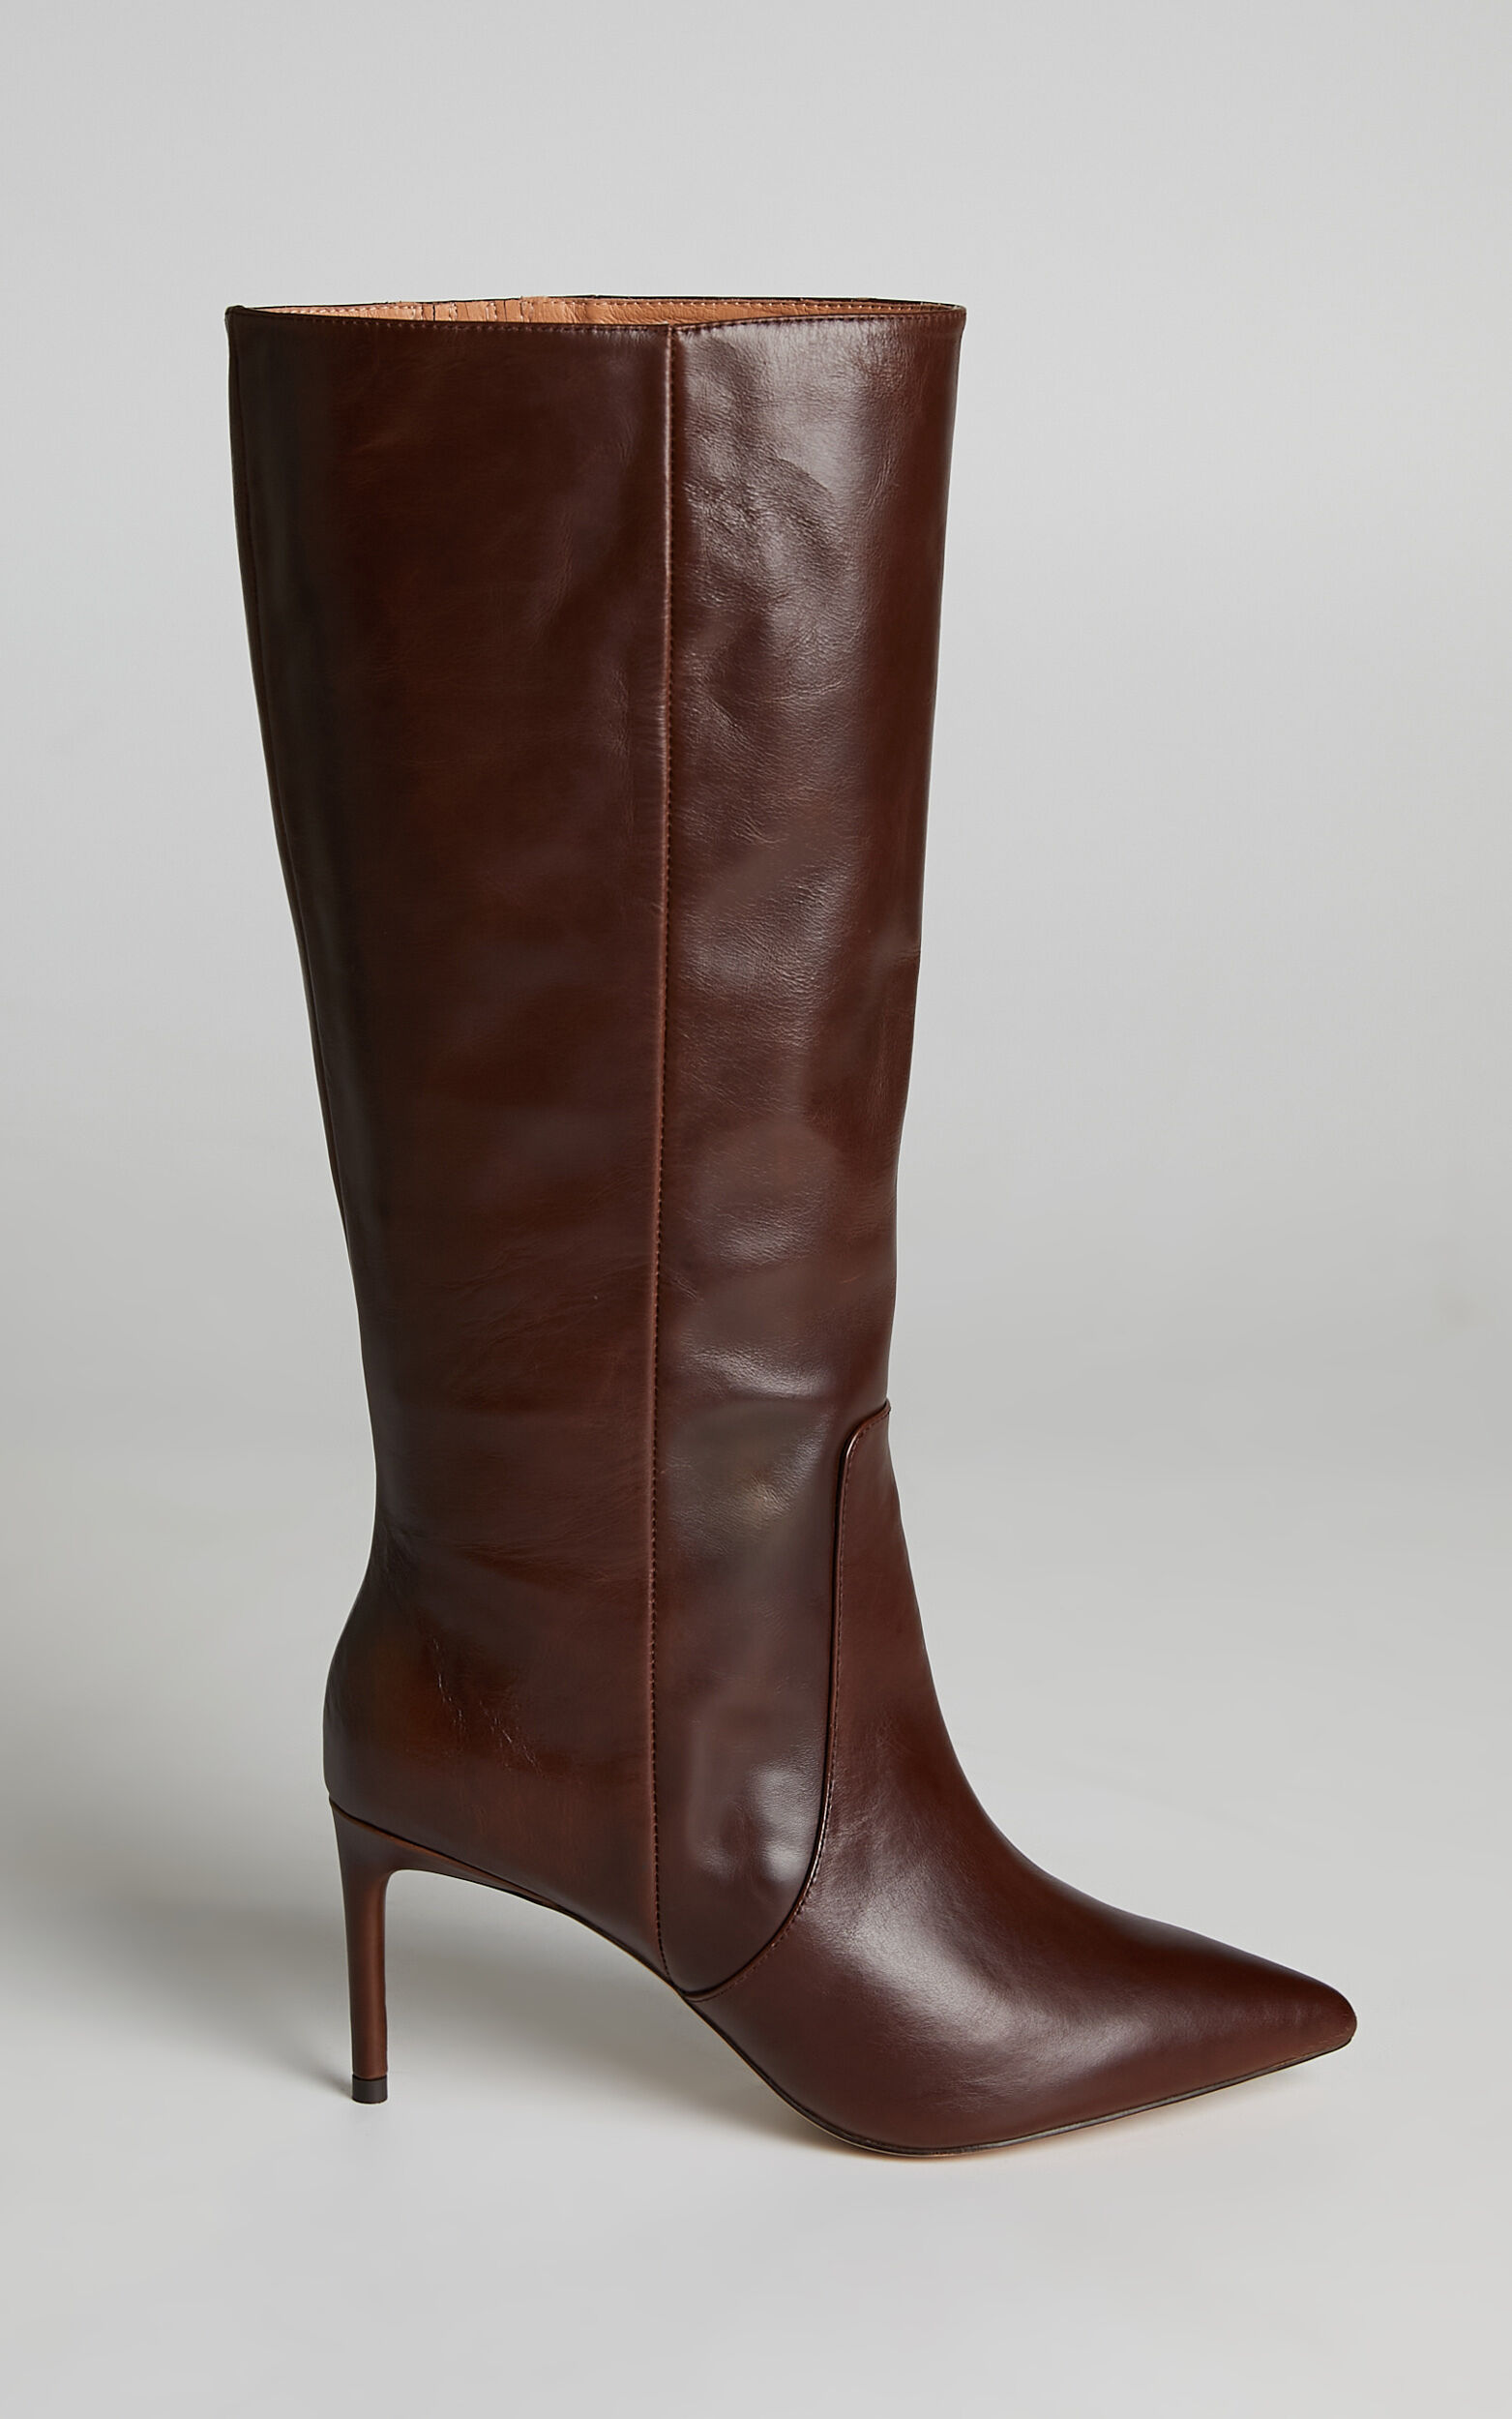 Alias Mae - Connie Boots in Choc Leather - 10.5, BRN1, super-hi-res image number null